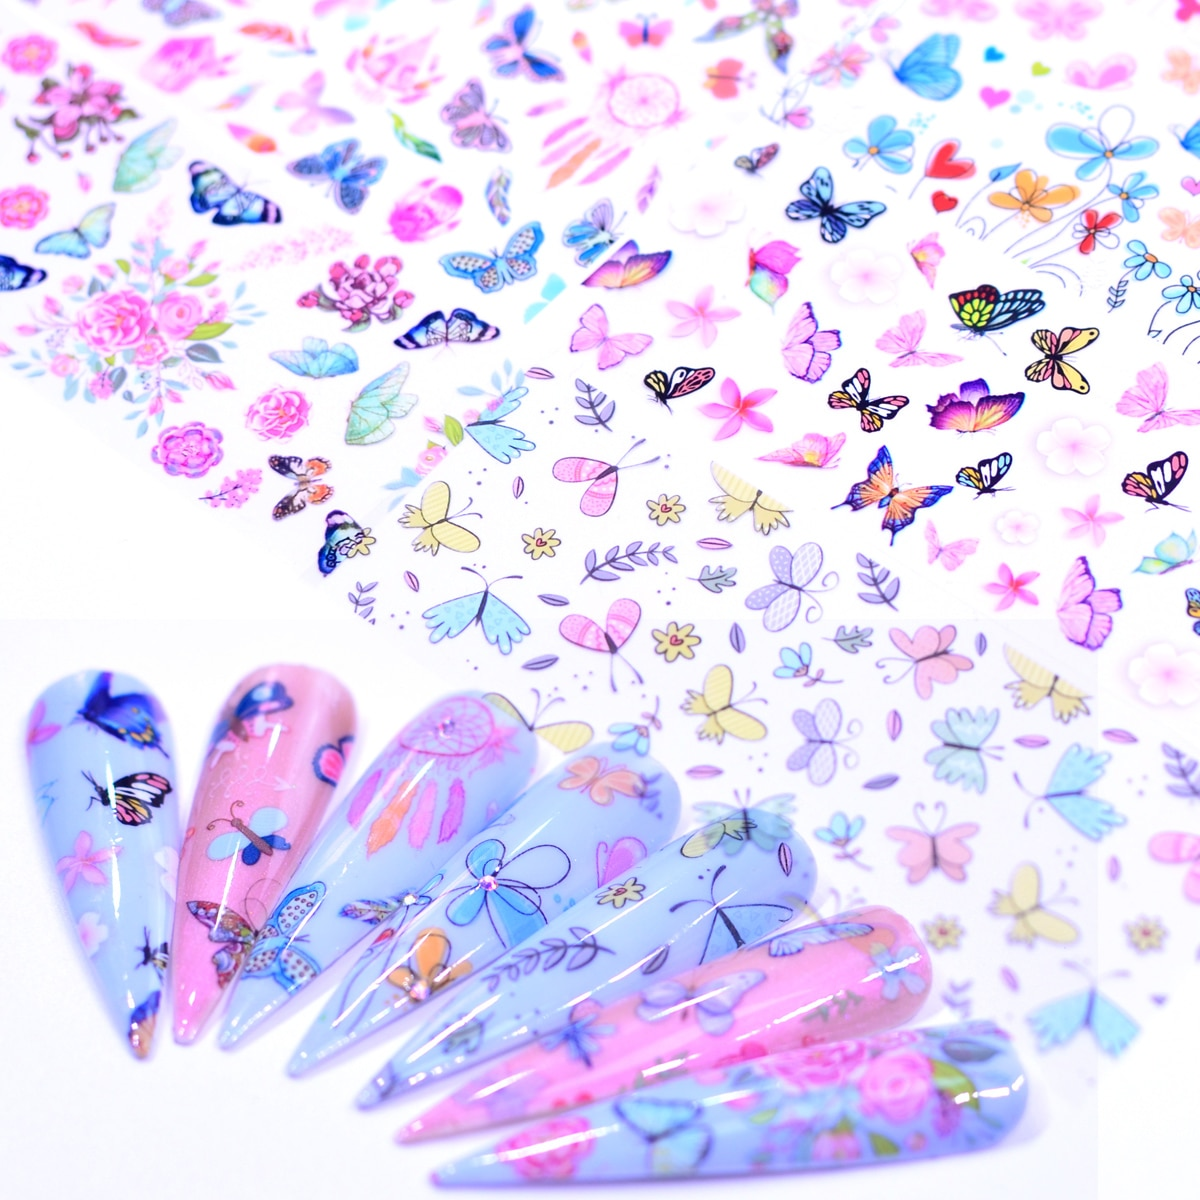 1pcs colorful foil plants 10pcs Butterfly Flower Stickers On Nails Foil Colorful Polish Adhesive Sticker Nail Decals Foil Design For Nail Manicure